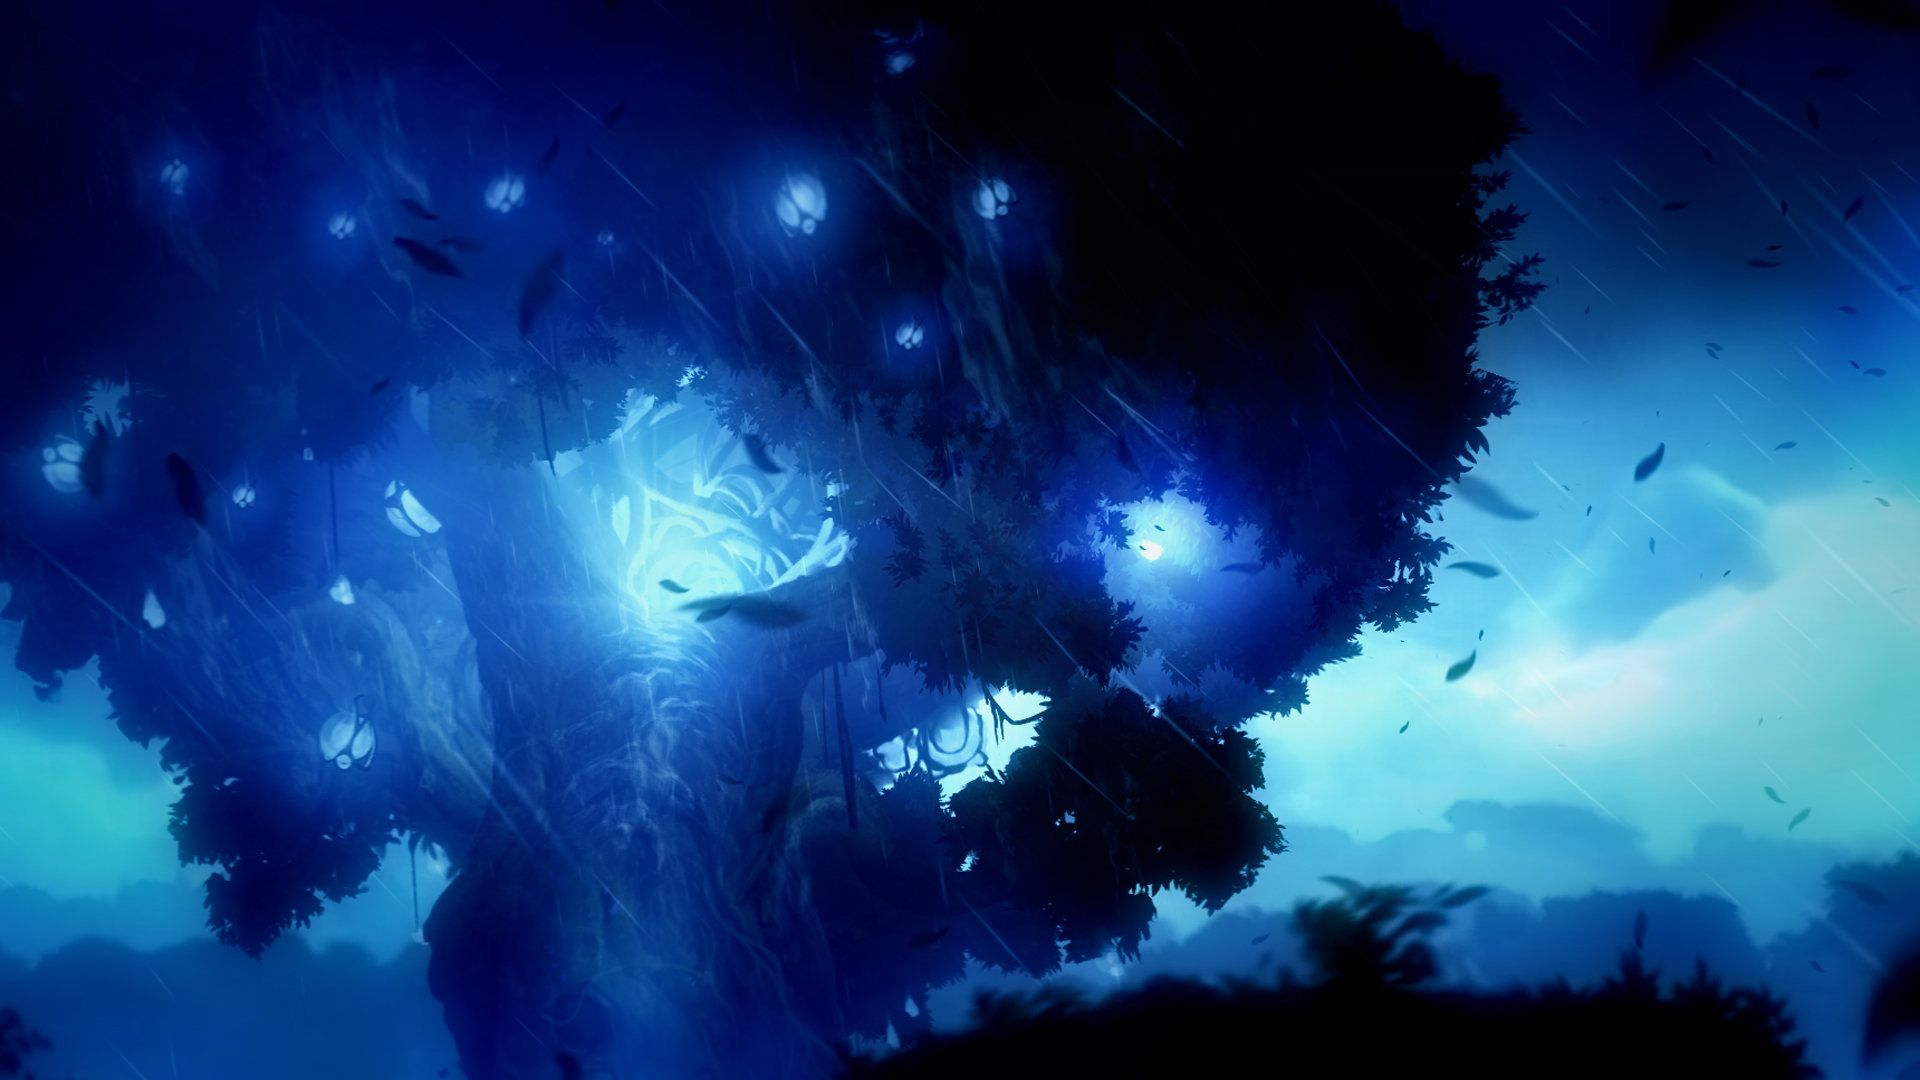 Ori And The Blind Forest Airborn Studios Environment Concept Art Concept Art Digital Painting Techniques